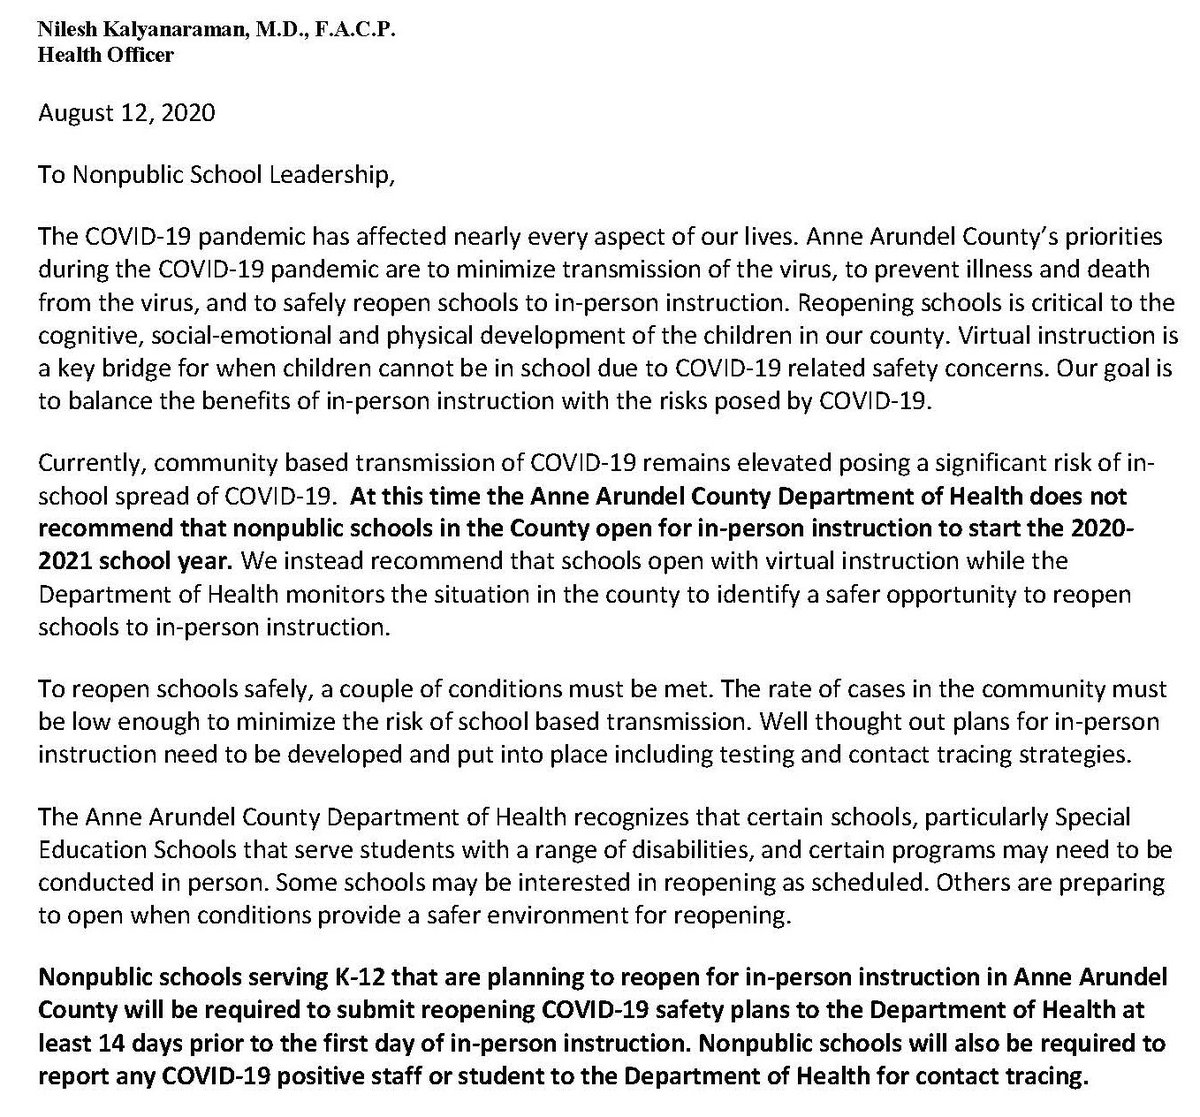 #AnneArundel Health Officer @nileshkal sends letter to #Nonpublic #SchoolLeaders concerning #BackToSchool Recommendations.  Read Entire Letter at  --  #COVID19 @AACountyGovt @CityofAnnapolis @AACountySchools